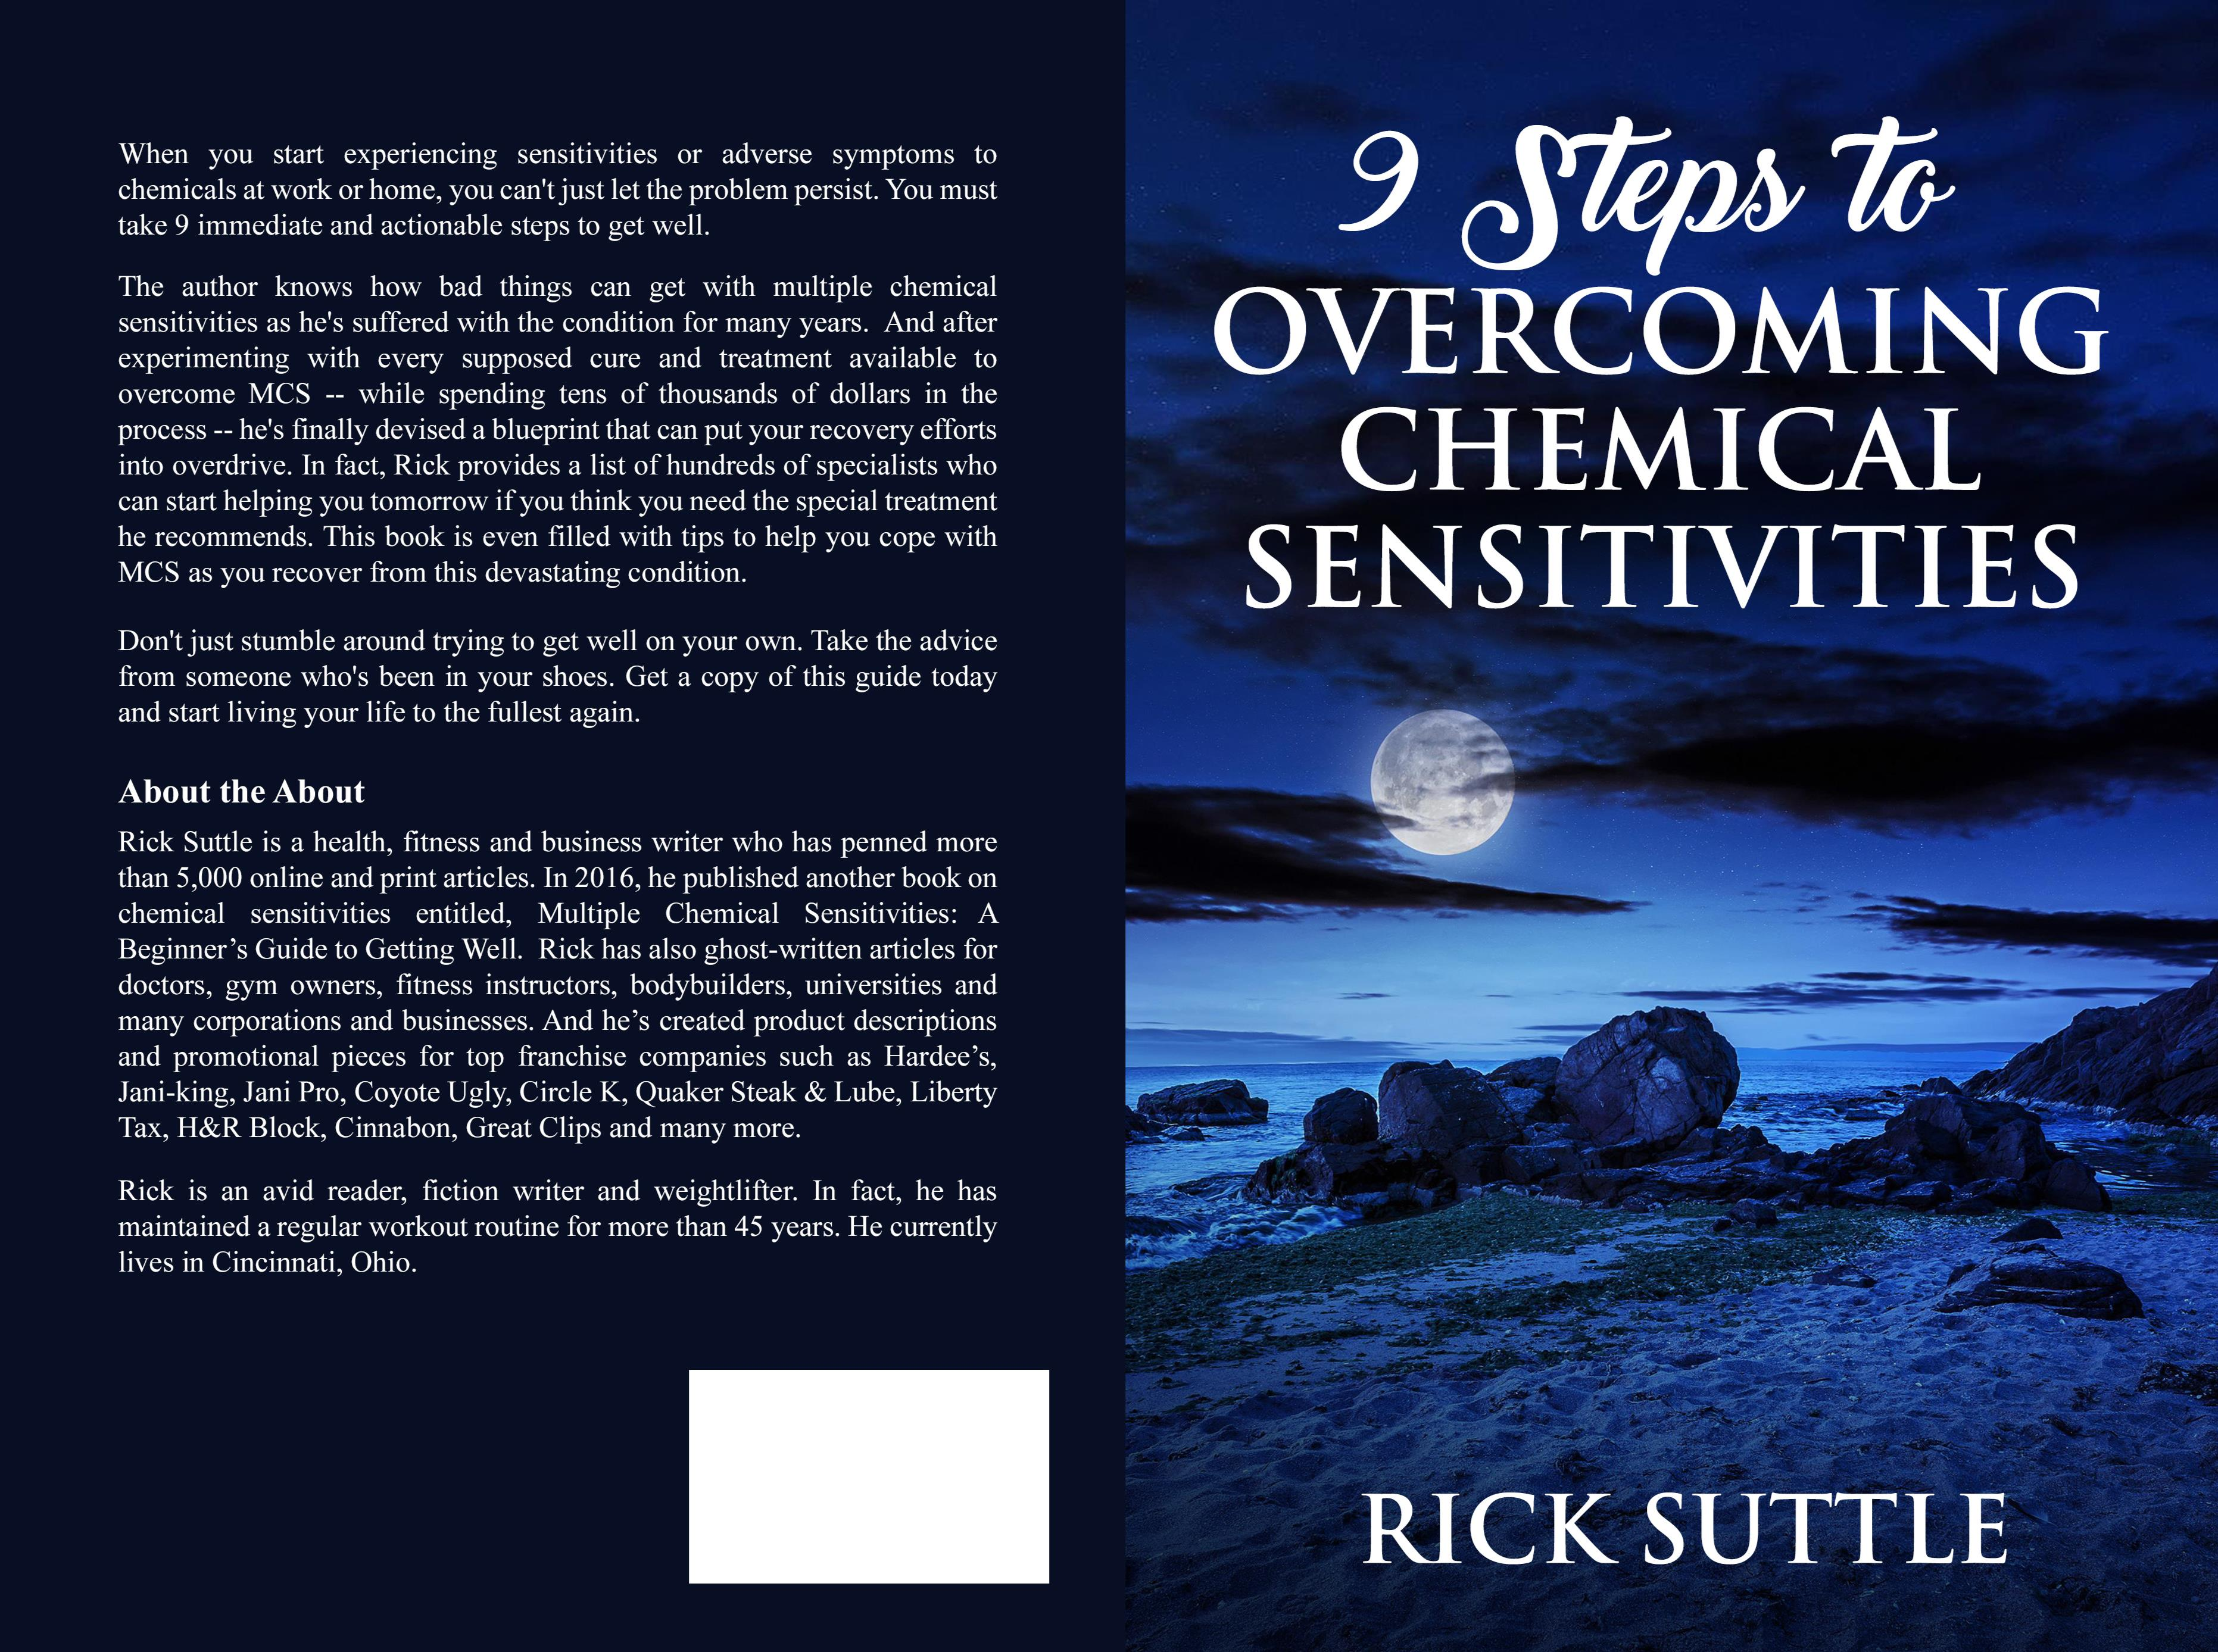 9 Steps to Overcoming Chemical Sensitivities cover image